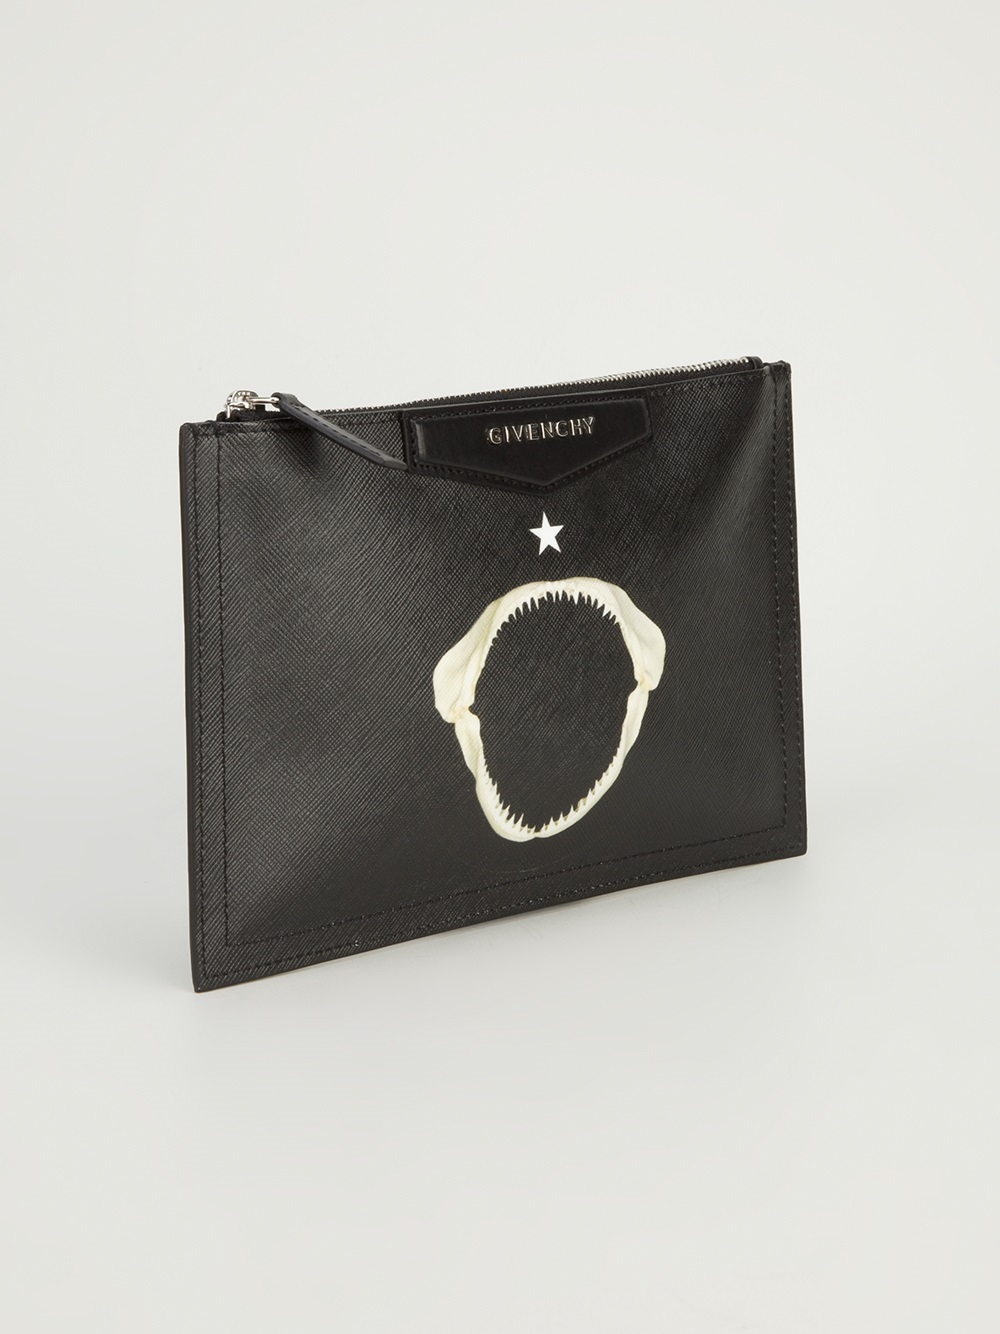 Lyst - Givenchy Zip Clutch Bag in Black 8728976525fd2